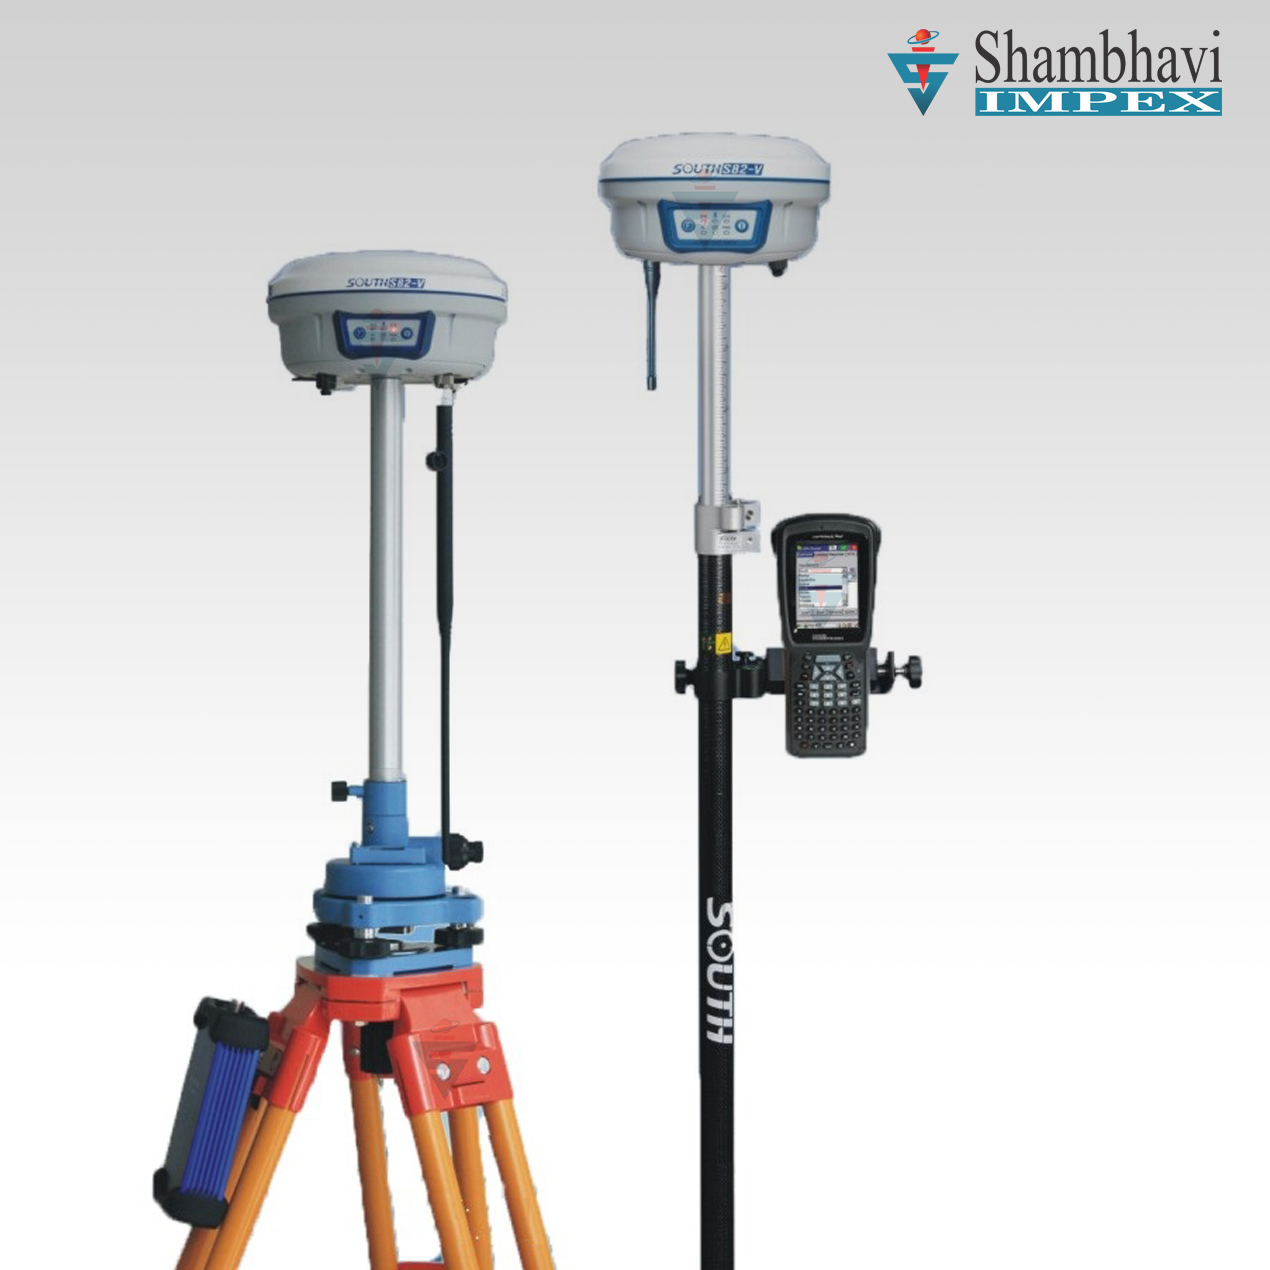 STAR S82v - Integrated RTK GNSS Surveying System